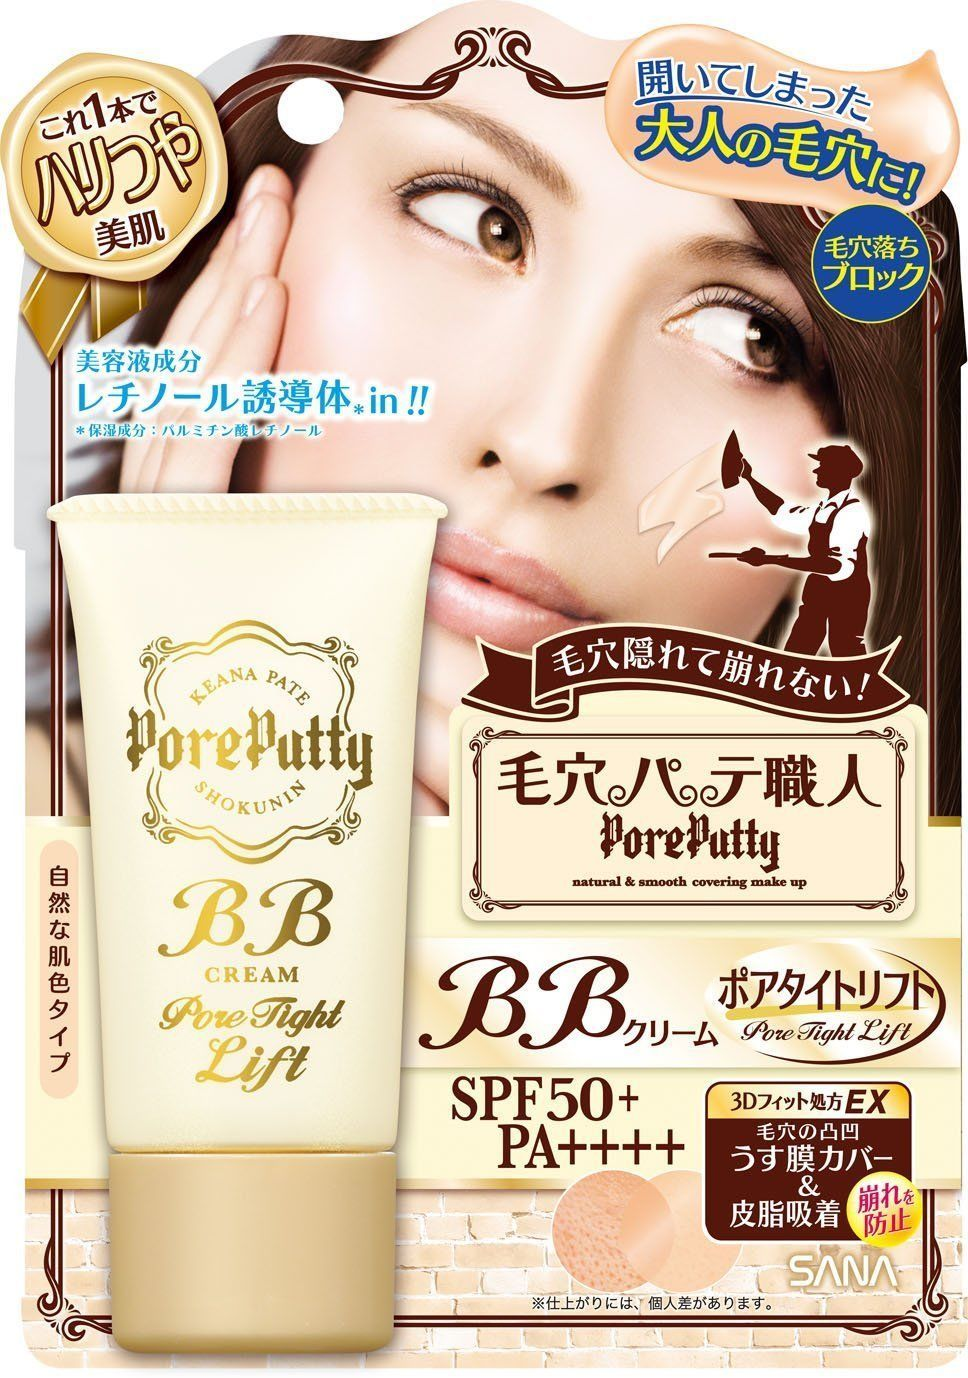 Sana Keana Pate Shokunin Pore Putty Bb Cream Tight Lift Spf50 Ac Clean Up Cushion Natural Beige Pa 30g Products Pinterest Creams And